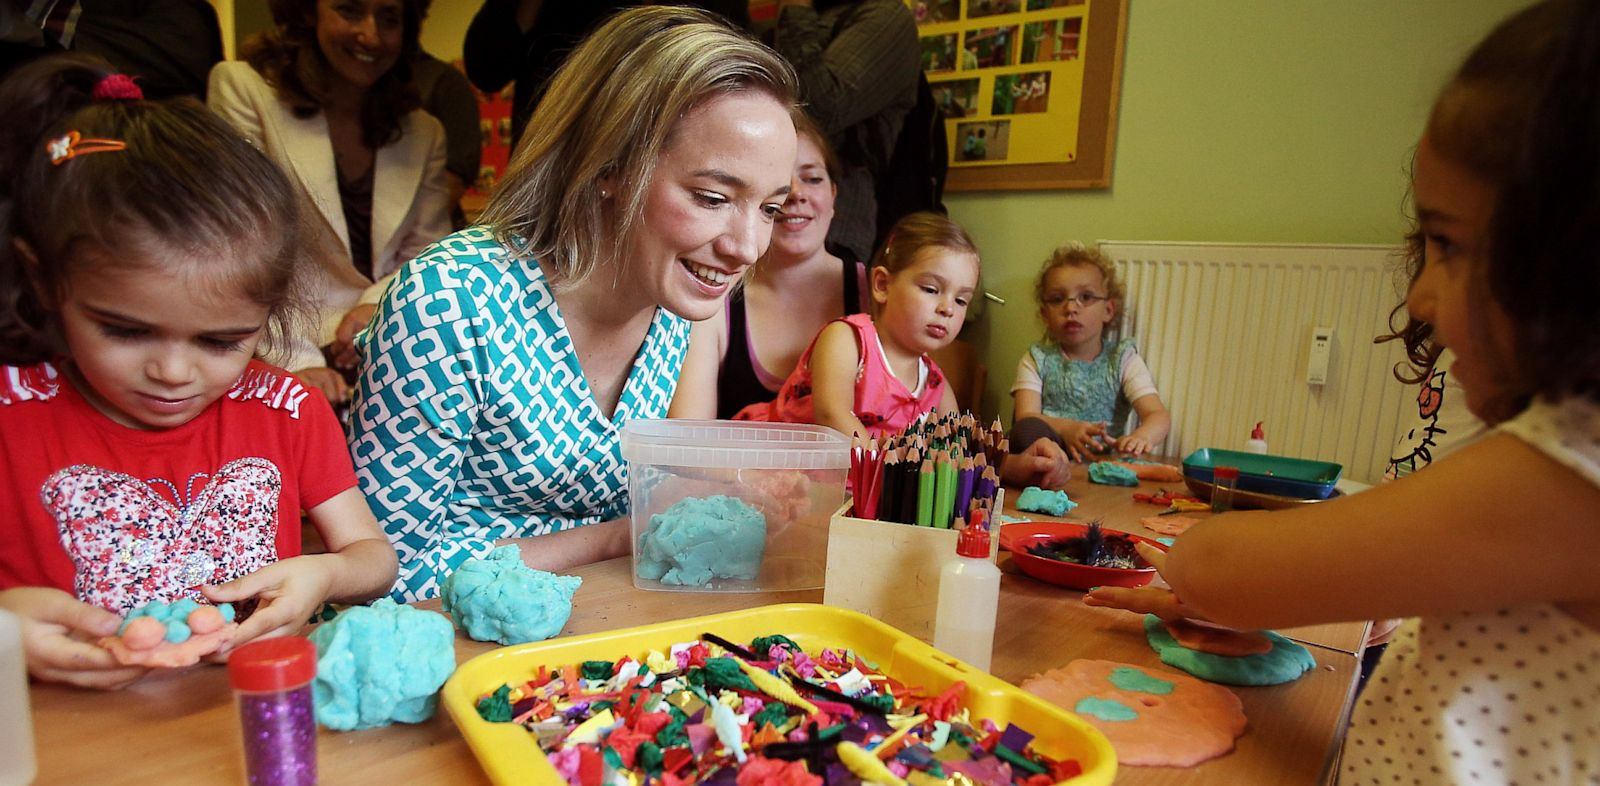 PHOTO: Kristina Schroeder playing with children